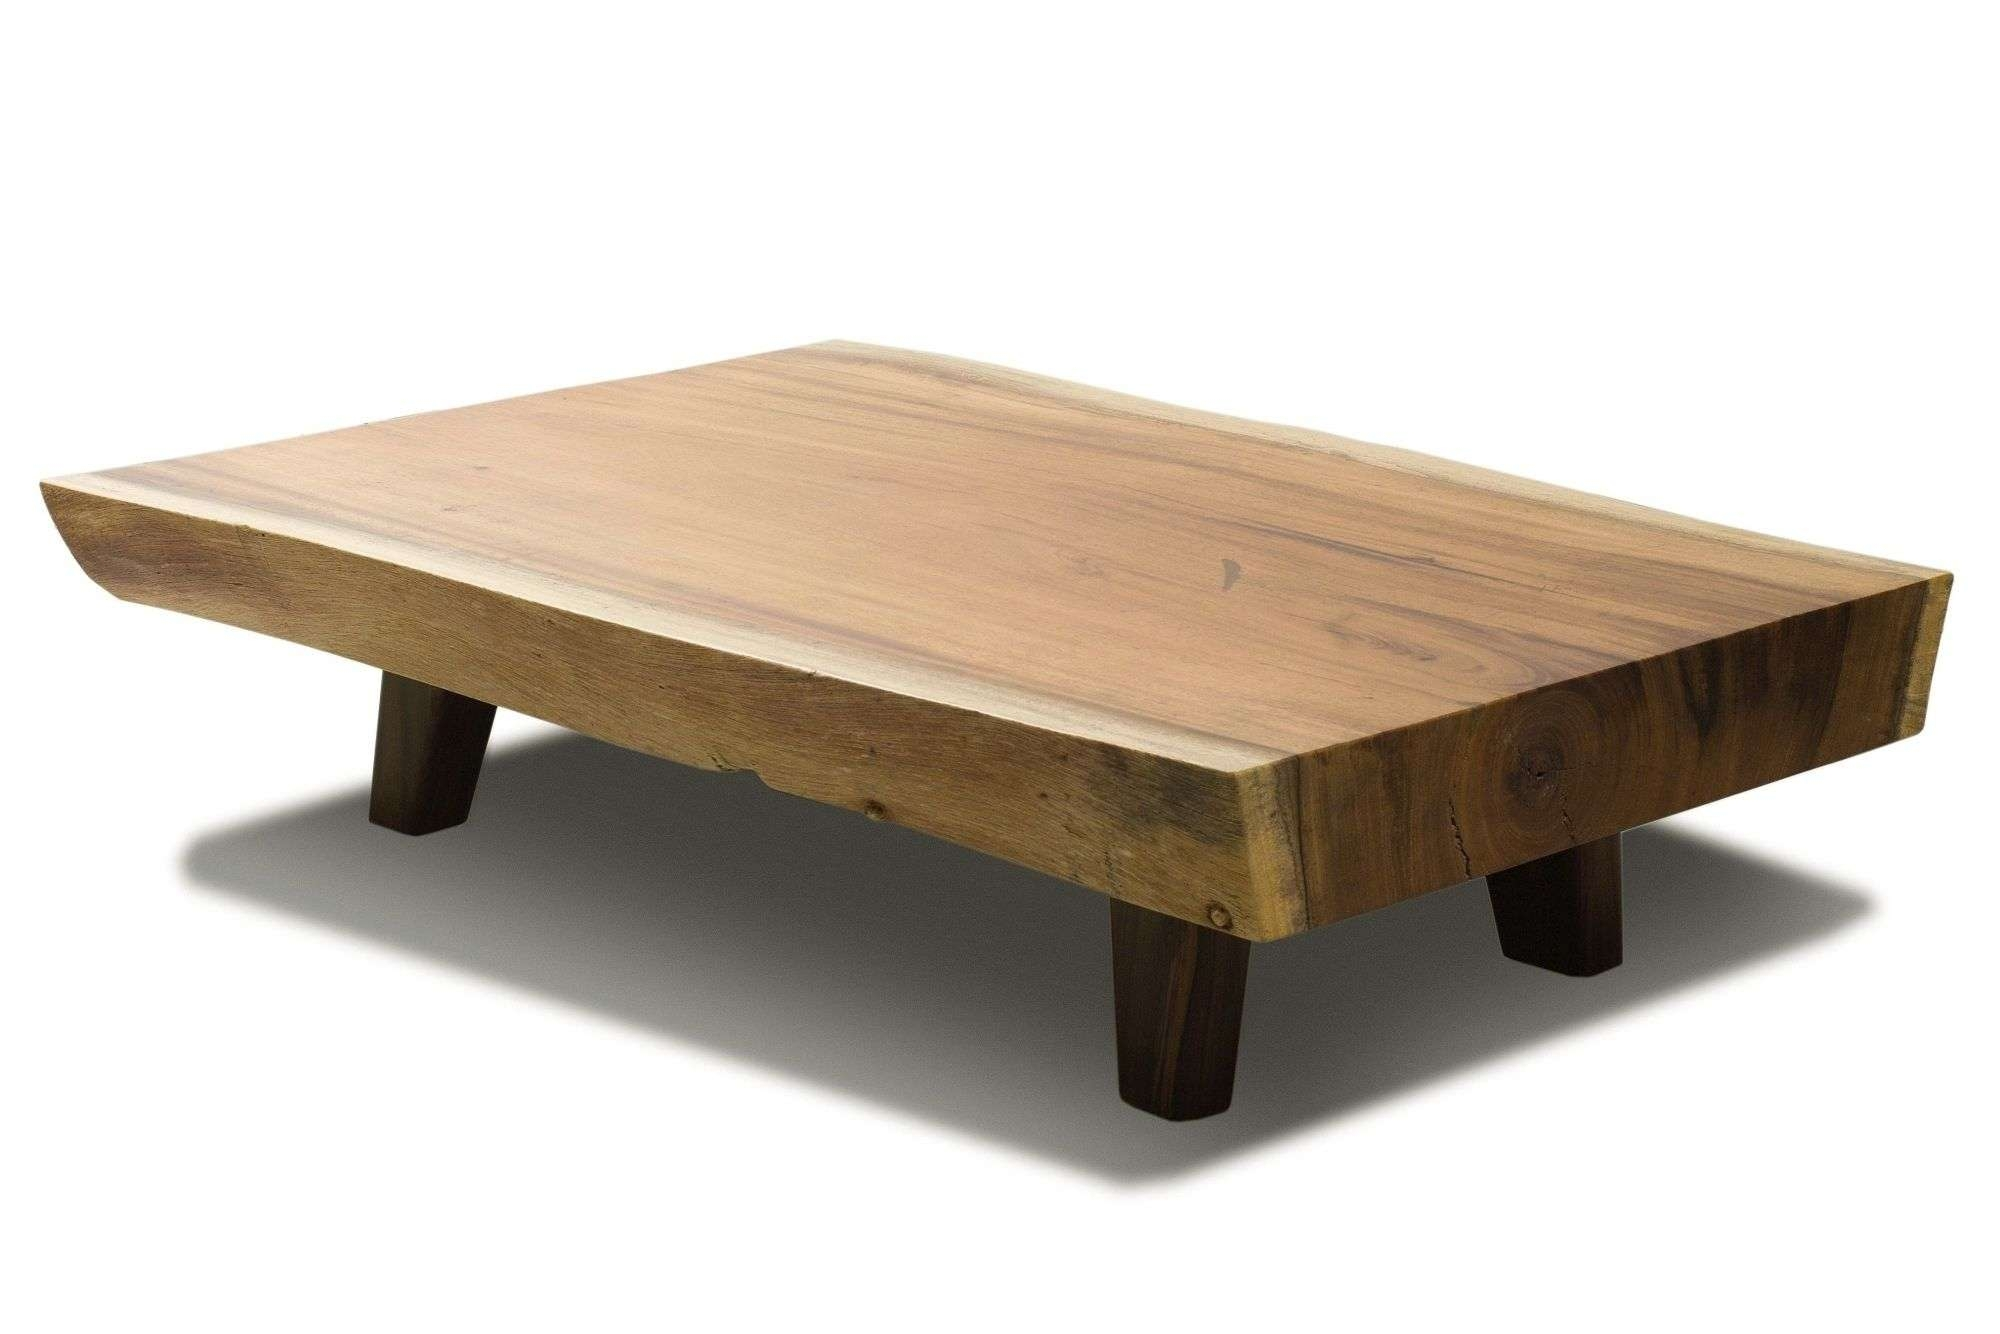 Fashionable Large Wood Coffee Tables Inside Coffee Table : Magnificent Large Wood Coffee Table Large Square (View 4 of 20)